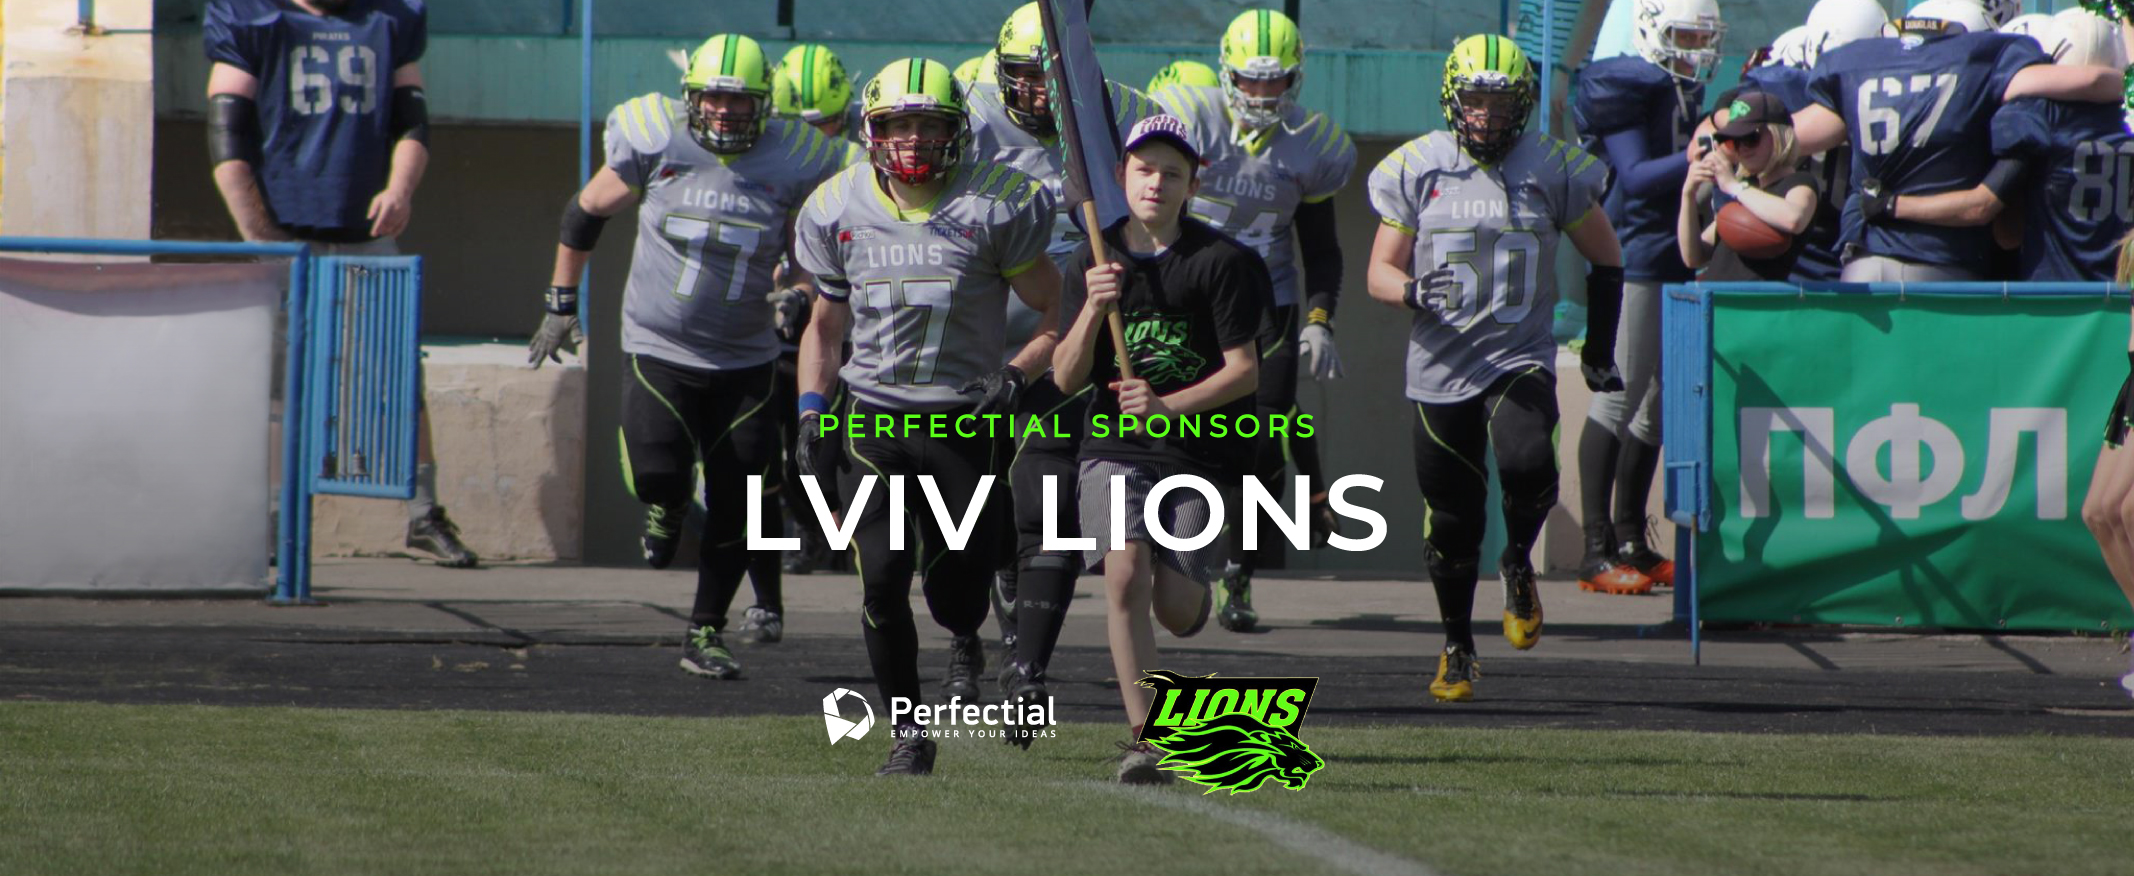 Perfectial to Sponsor Lviv Lions American Football Team